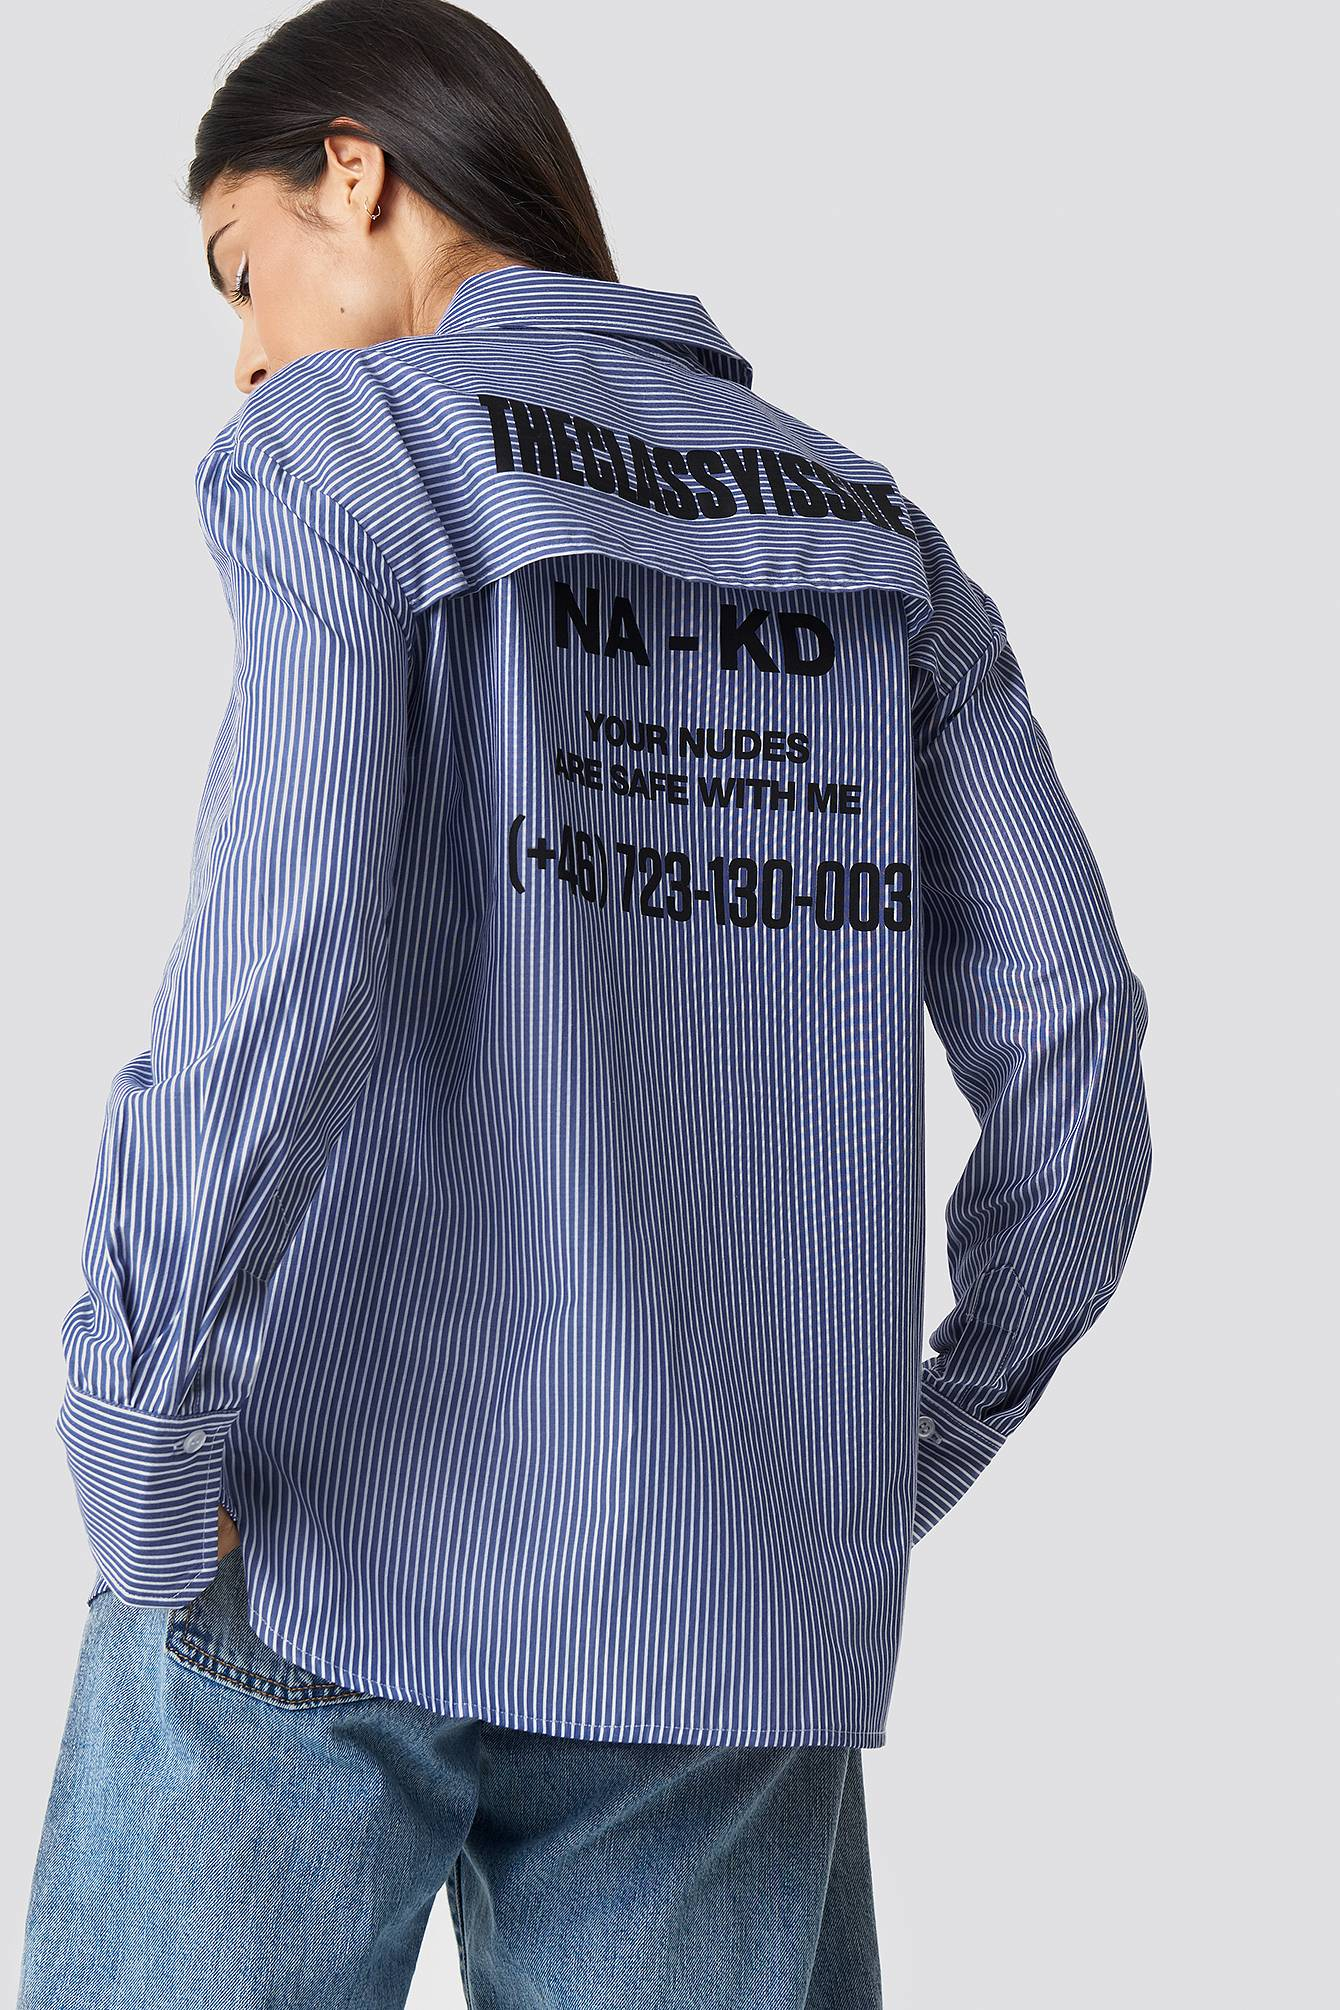 The Classy Issue x NA-KD The Classy Safety Shirt - White,Blue